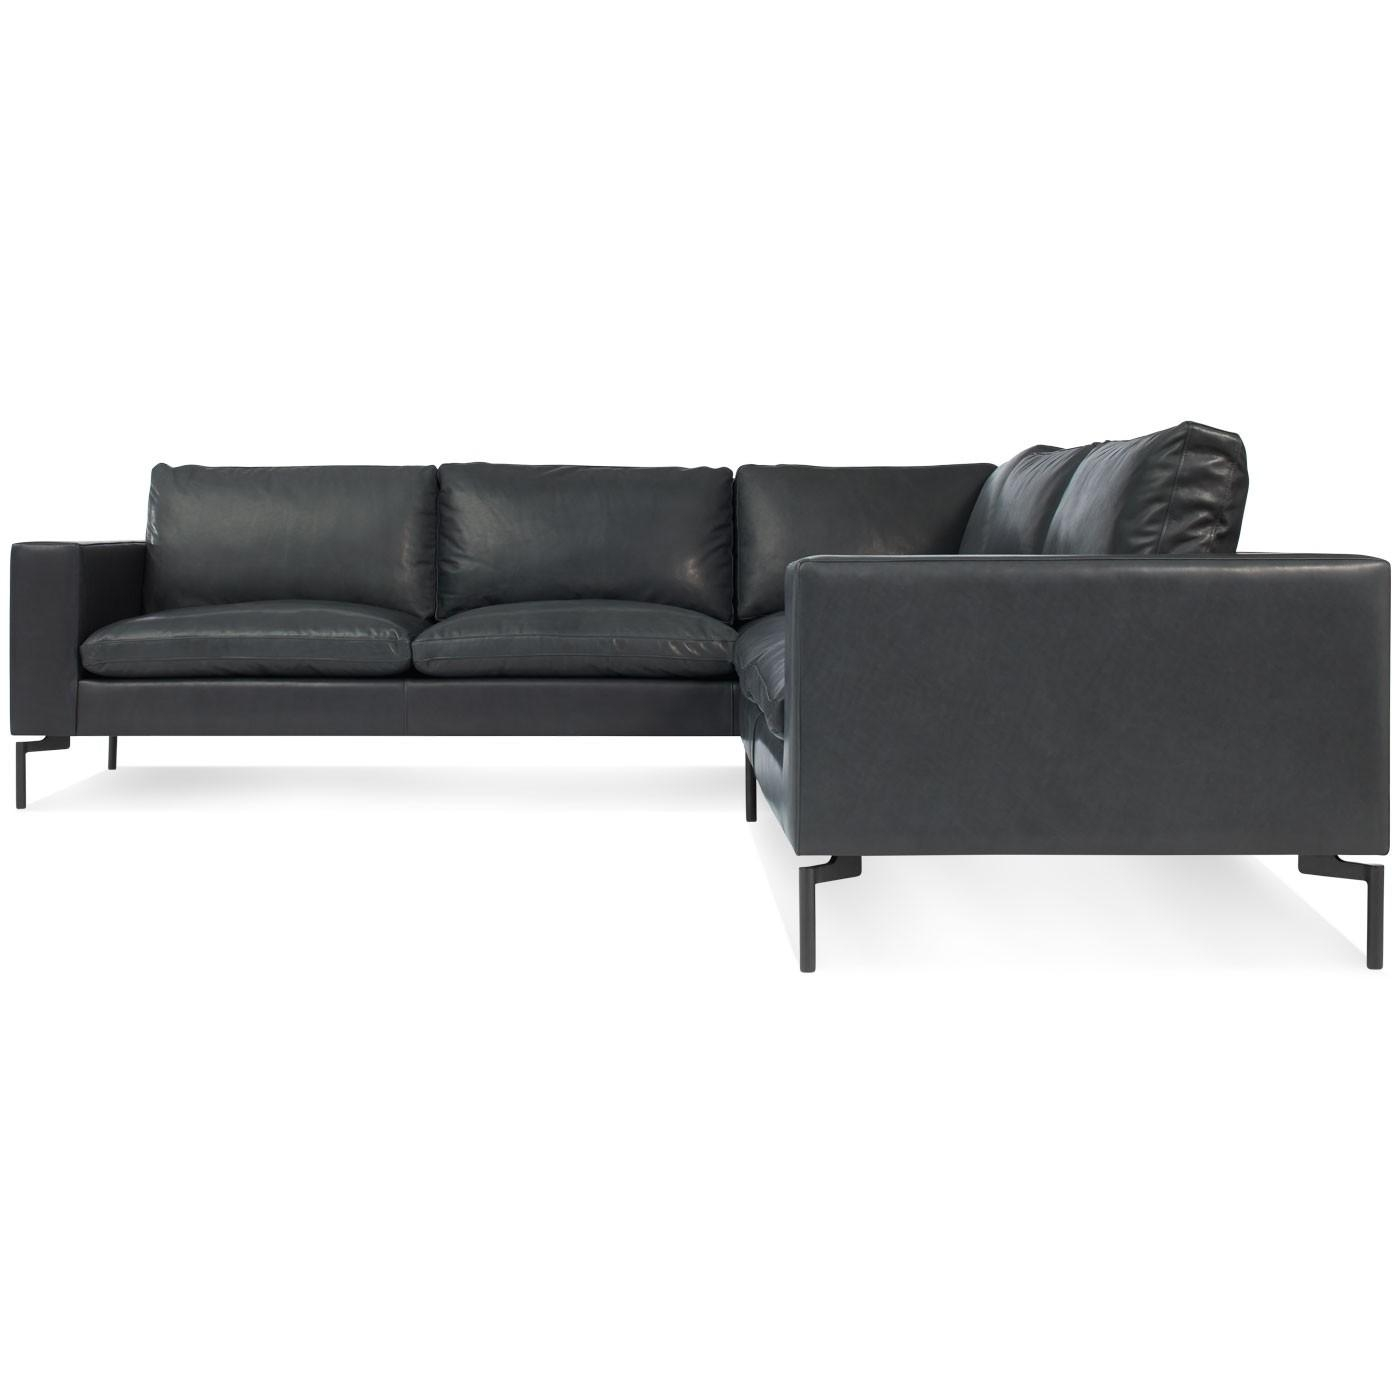 New Standard Small Leather Sectional – Modern Leather Sofa | Blu Dot within Modern Small Sectional Sofas